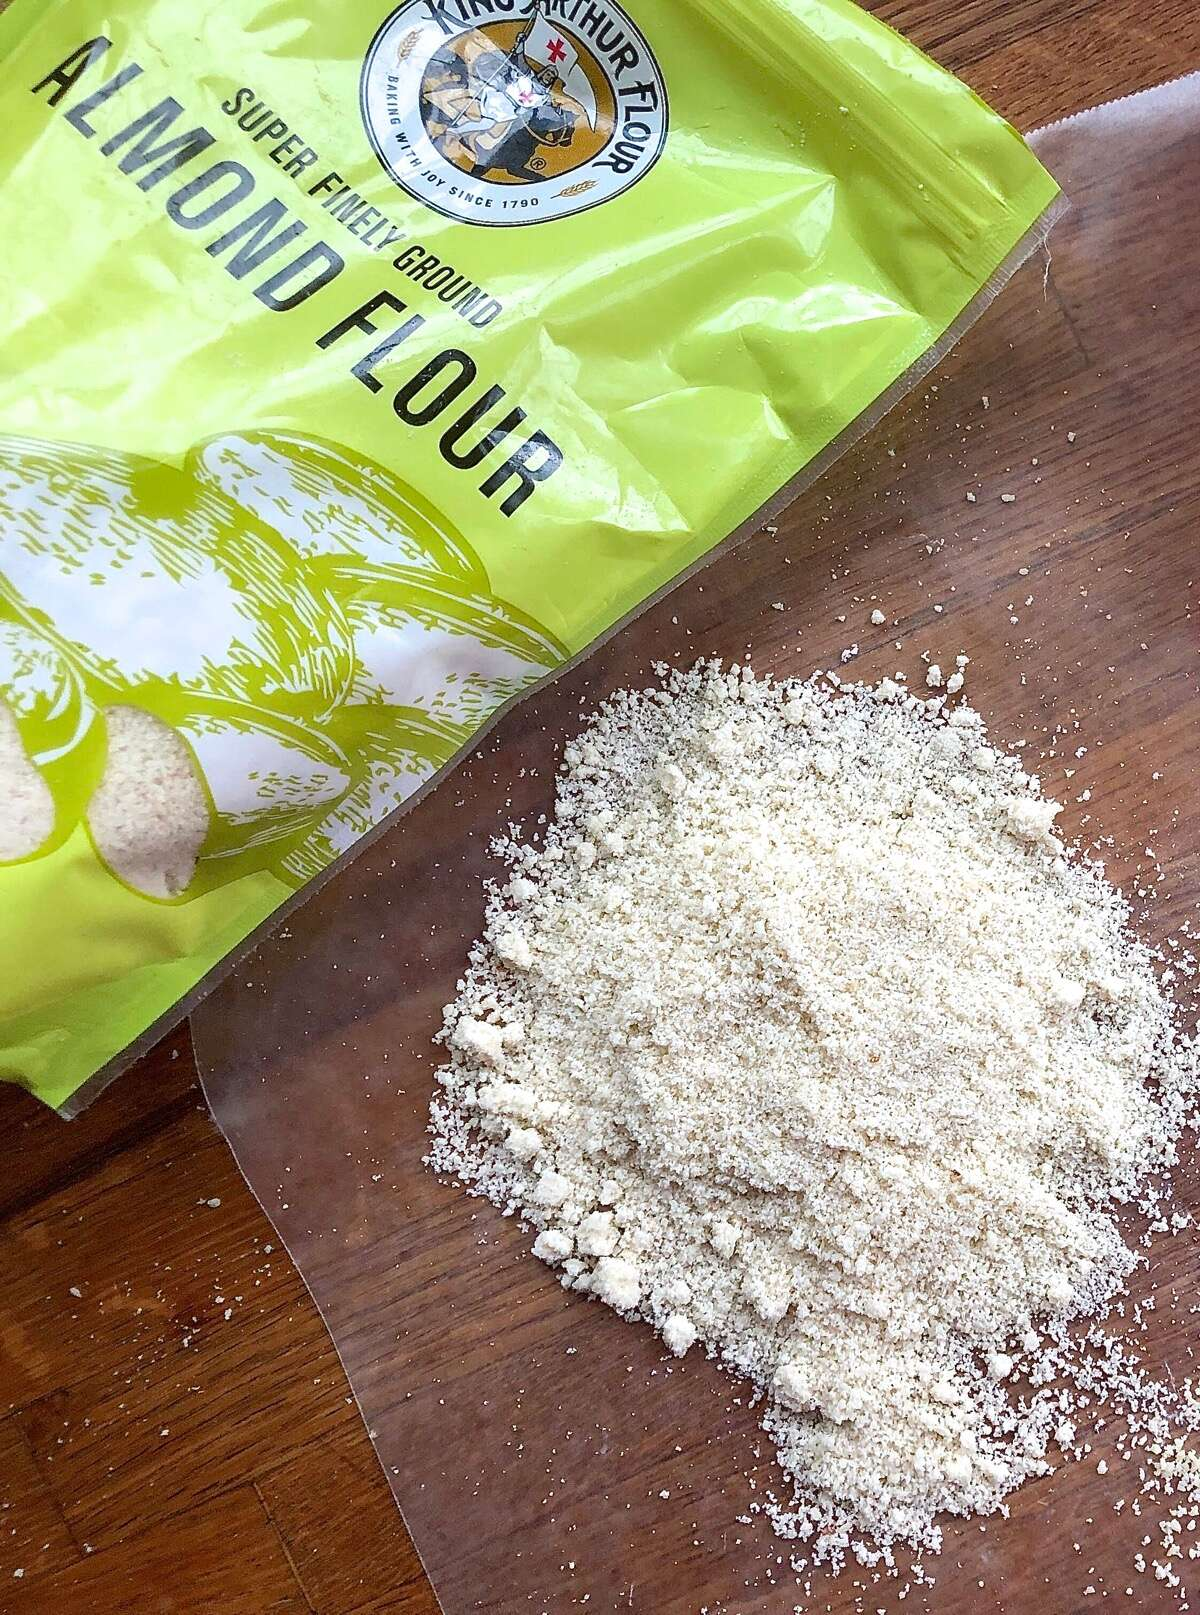 Bag of King Arthur Almond Flour, some spilled out onto a cutting board.